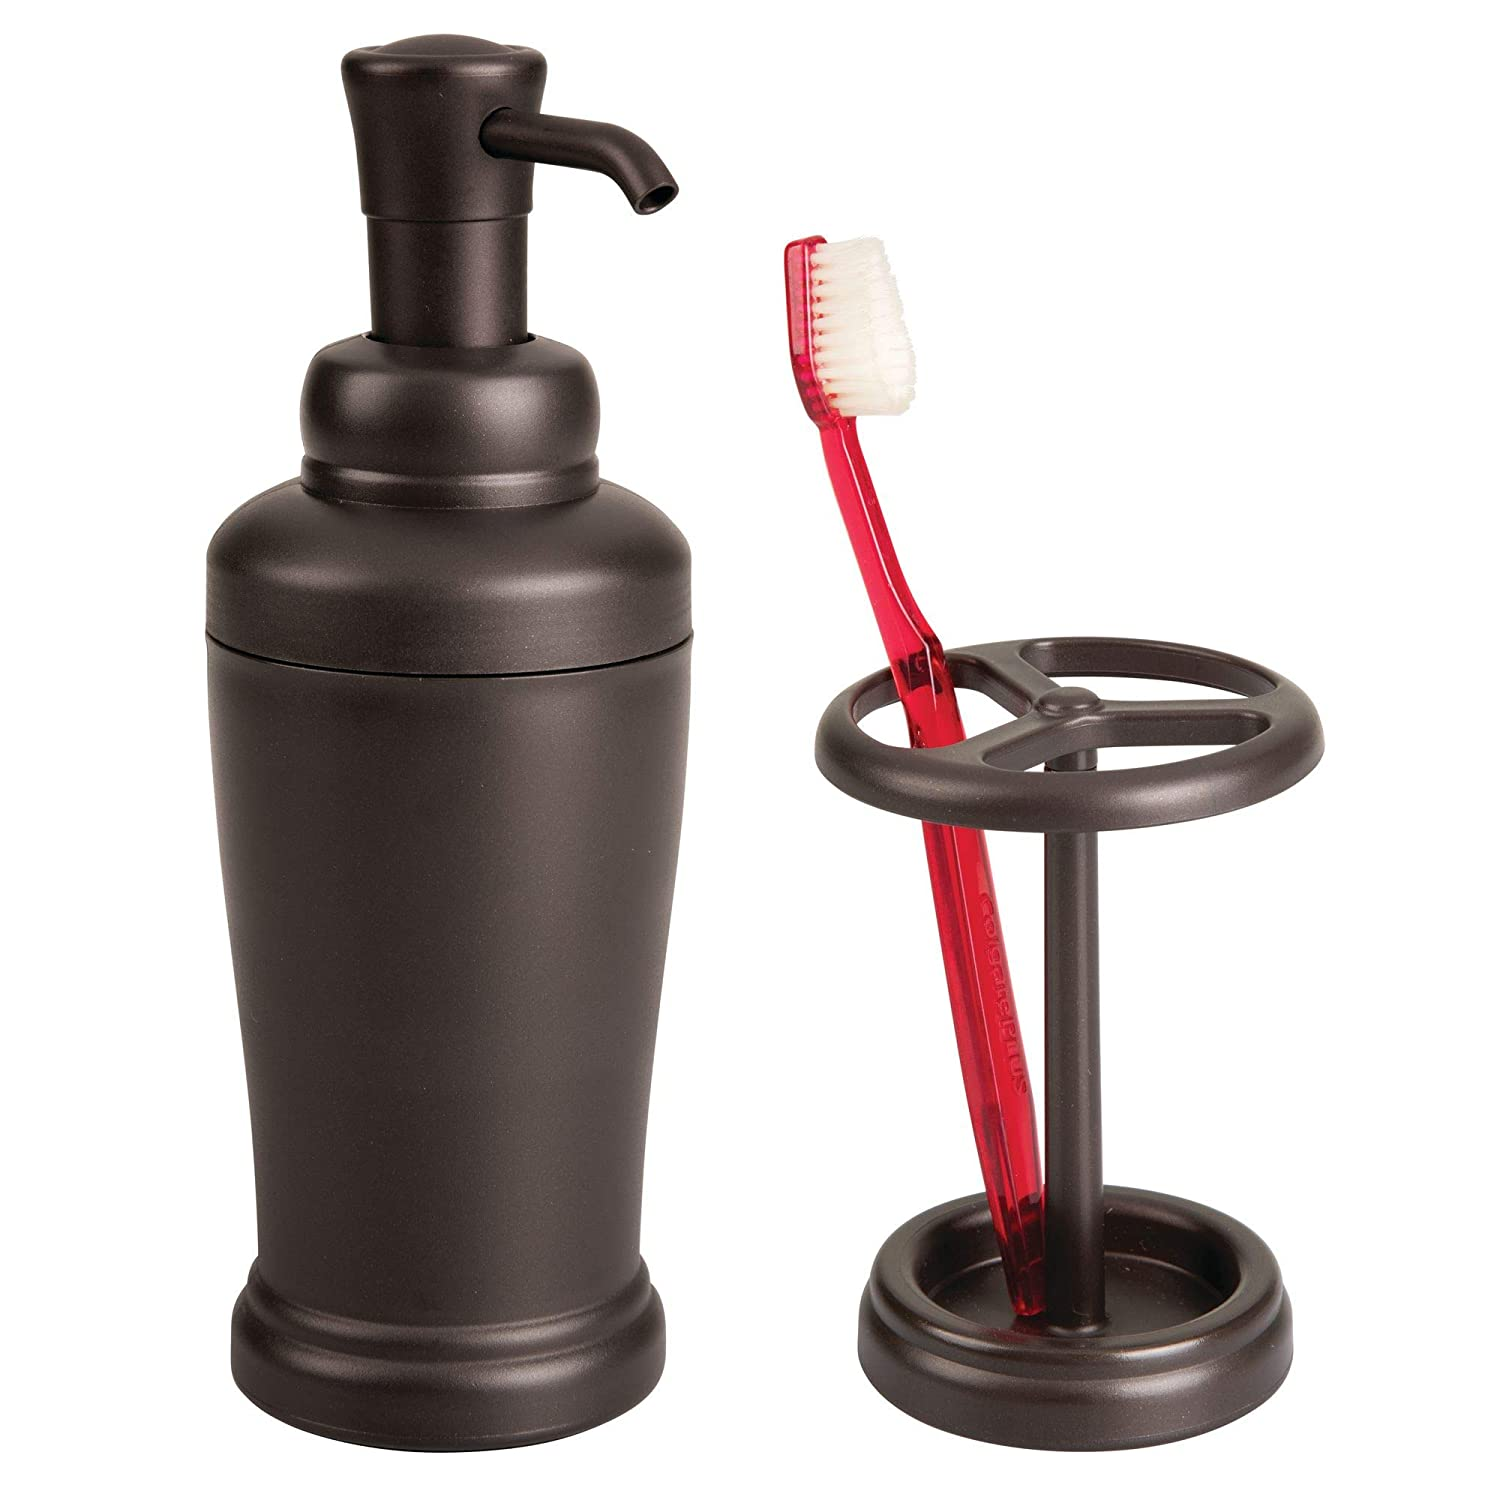 mDesign Soap Pump Dispenser and Toothbrush Holder for Bathroom Vanity � Set of 2, Bronze MetroDecor